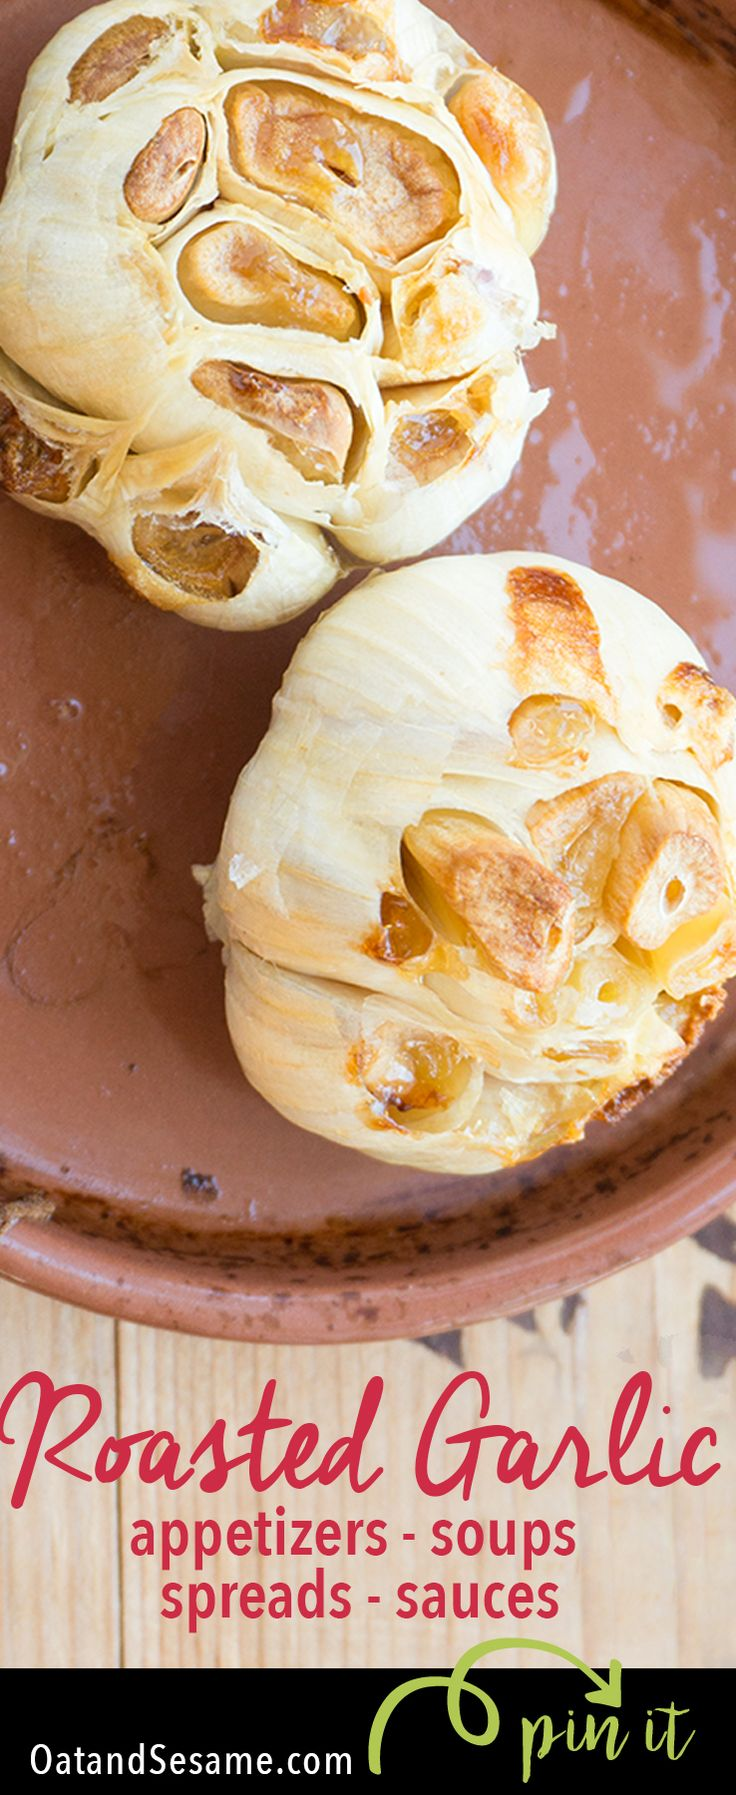 Roasted Garlic and 10 Ways to Use it! Mellow and rich, roasted garlic can flavor so many dishes | recipe at OatandSesame.com